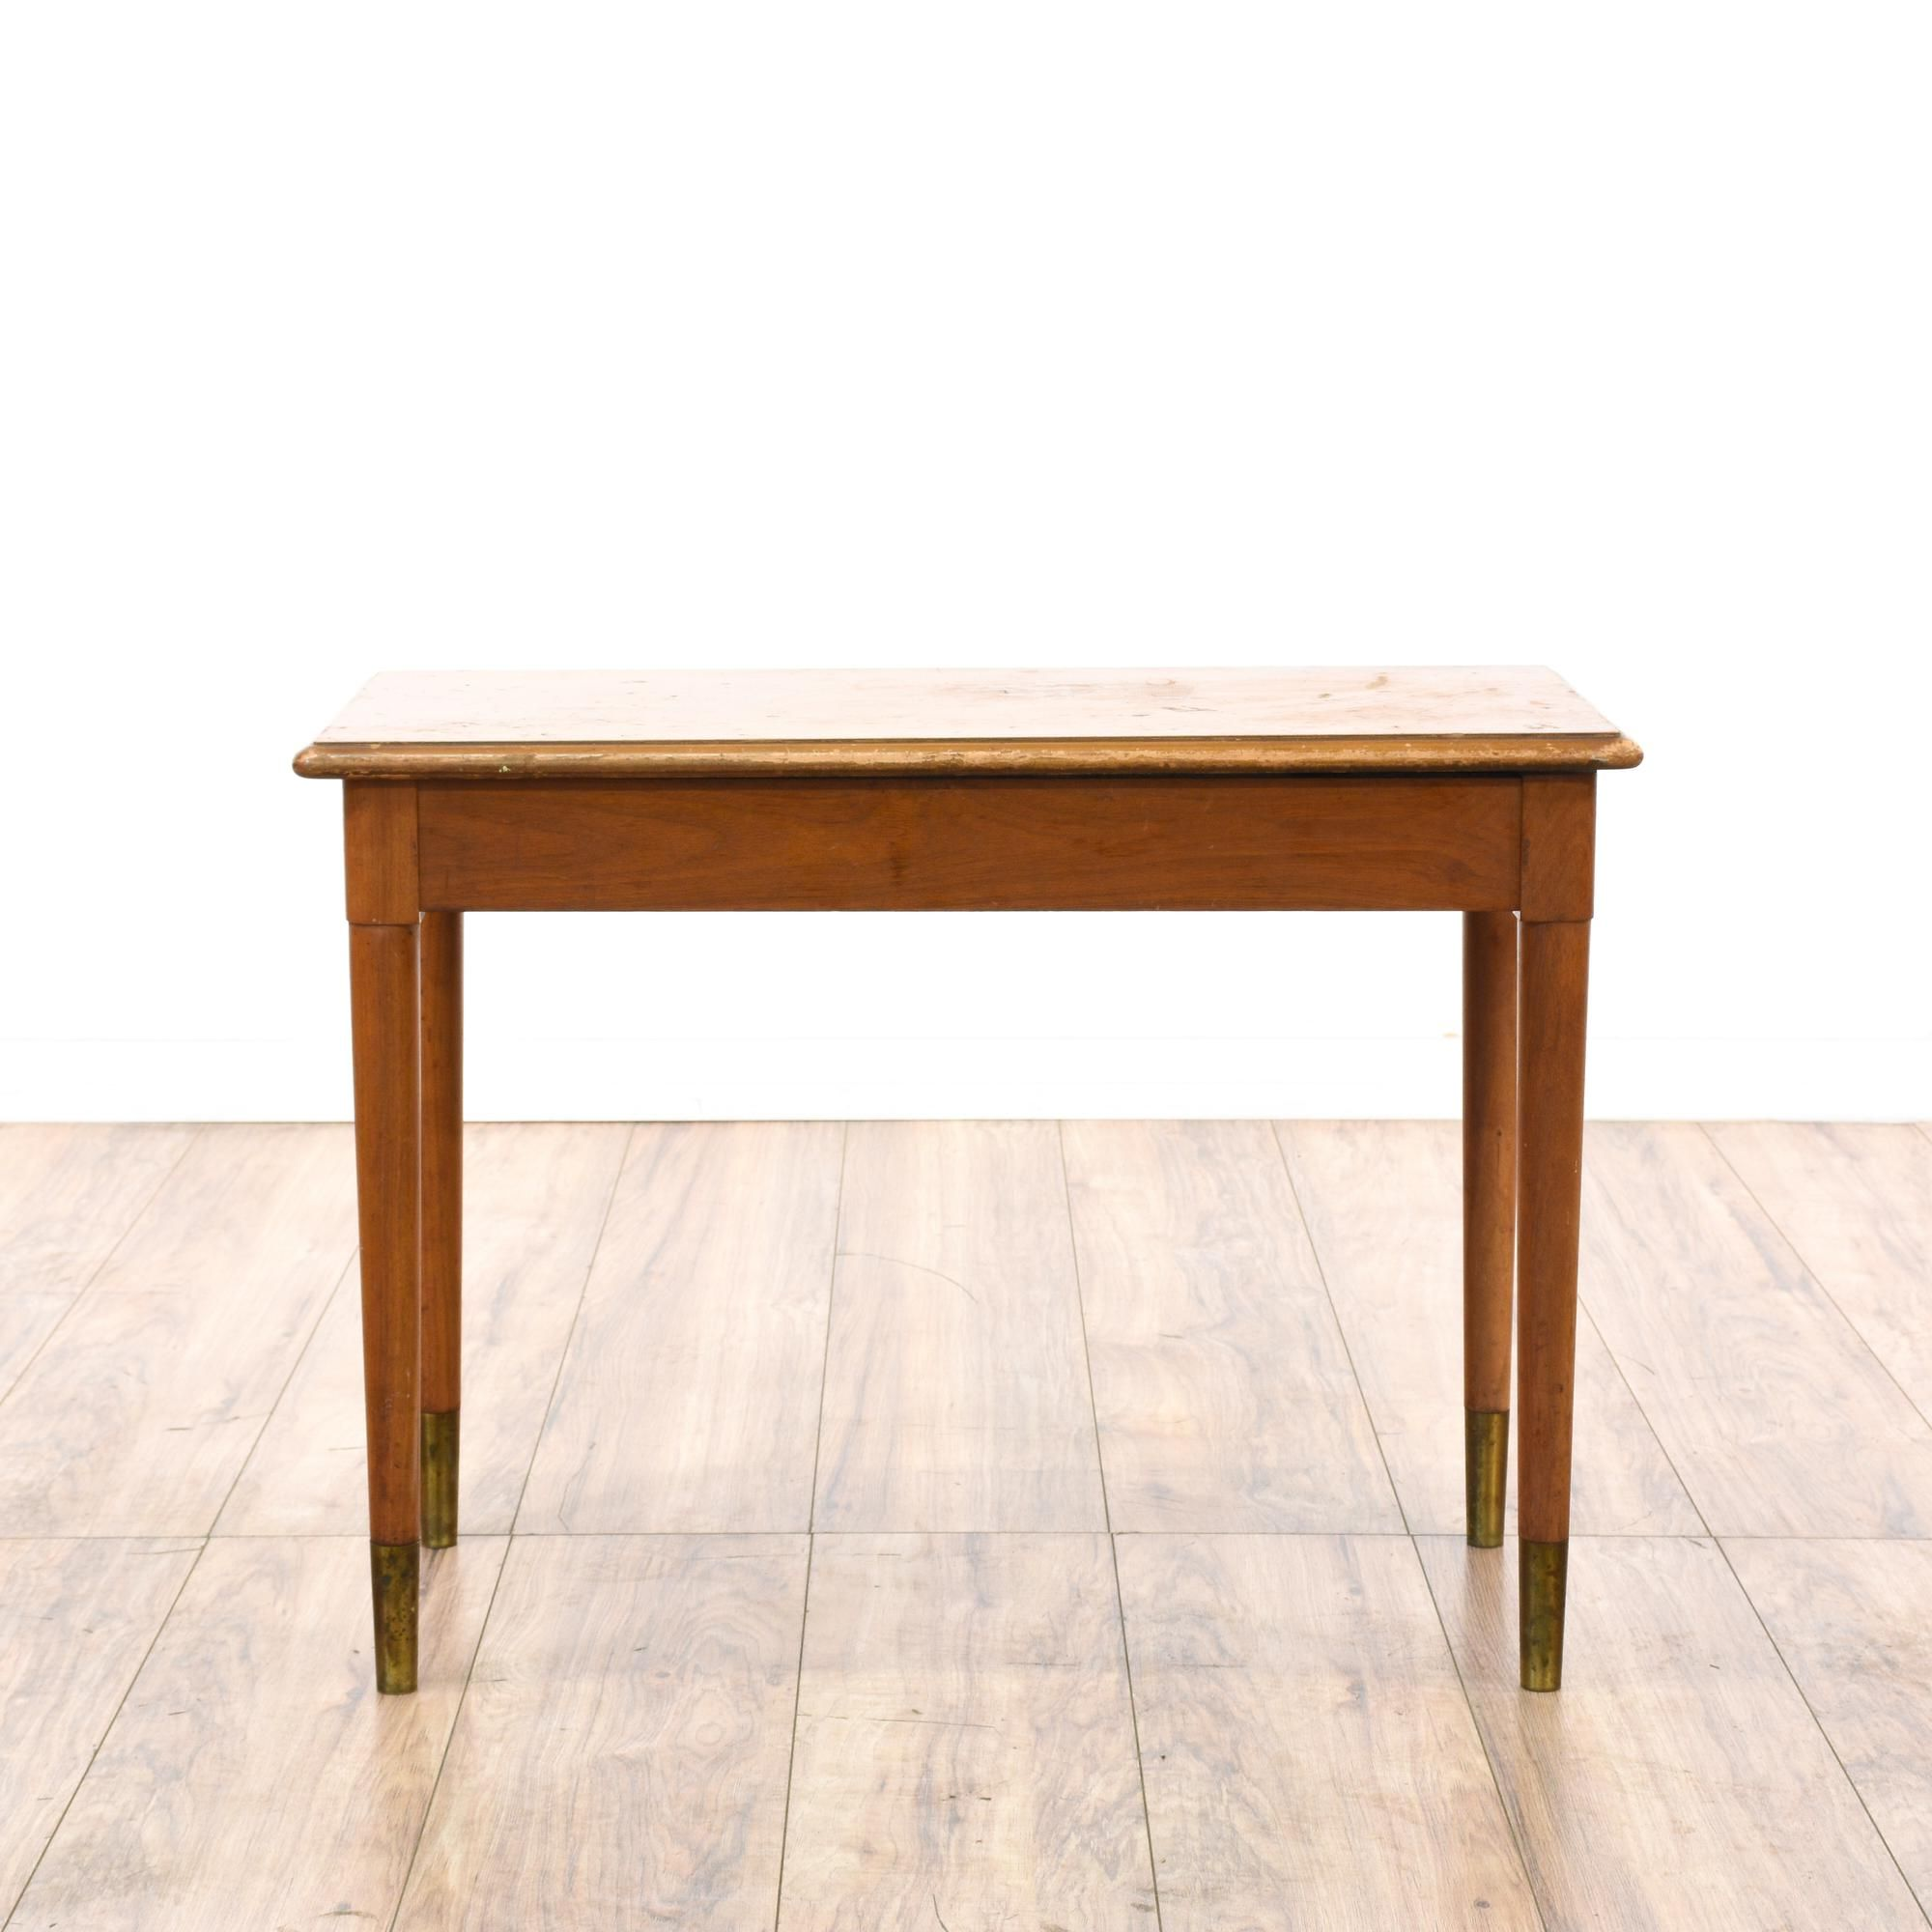 Incredible This Mid Century Modern Storage Bench Is Featured In A Solid Gmtry Best Dining Table And Chair Ideas Images Gmtryco